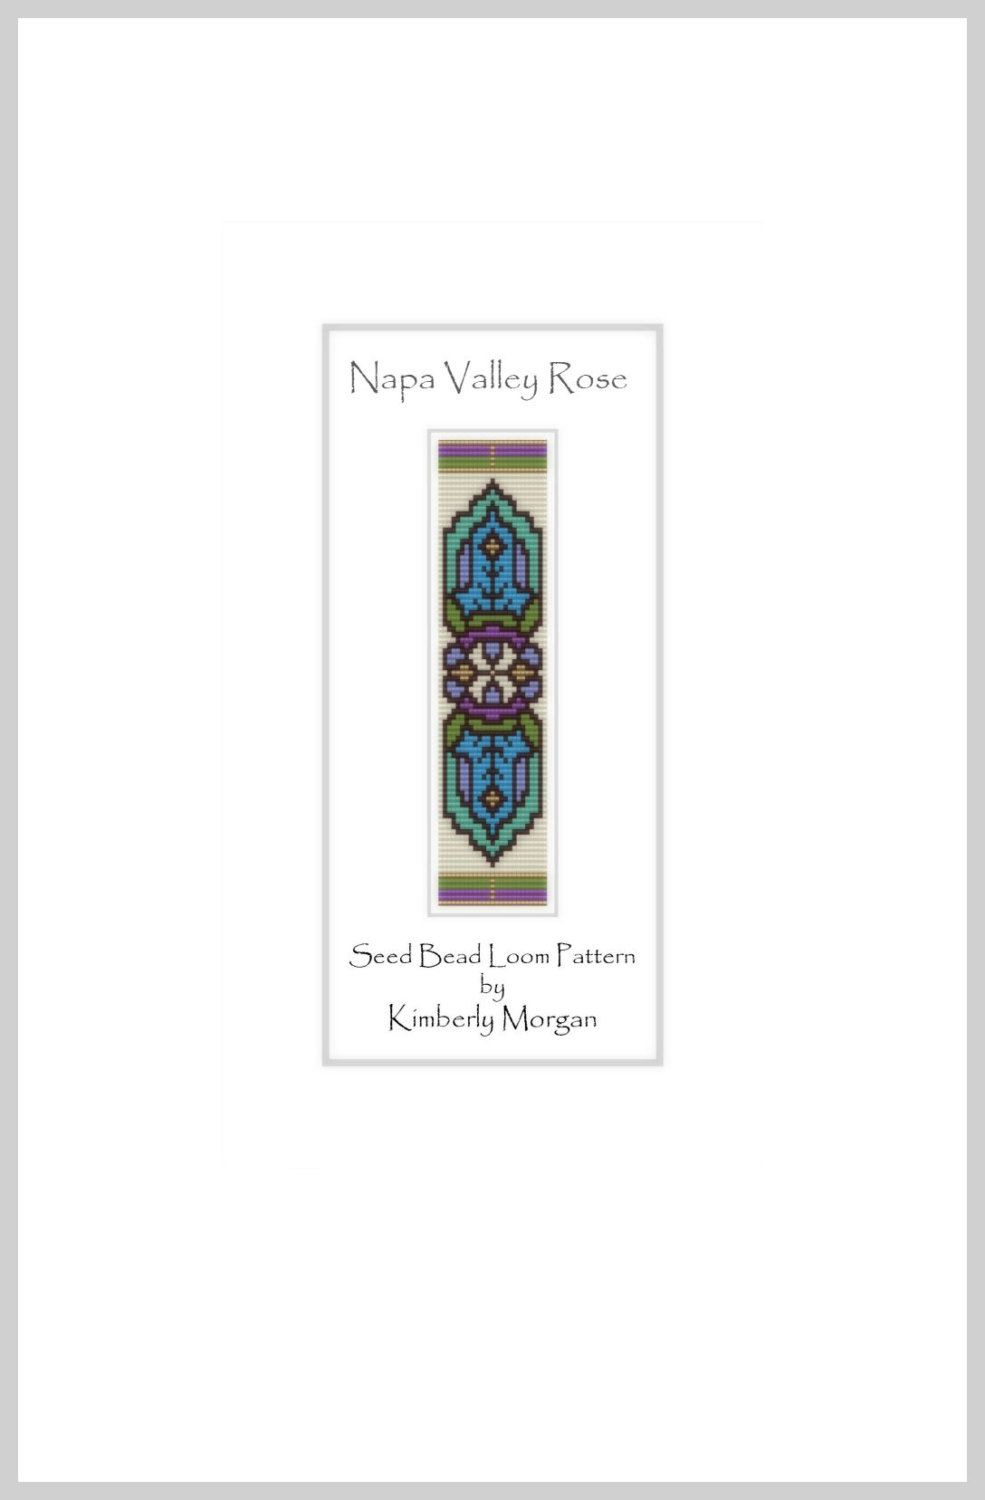 The Napa Valley Rose PDF contains labeled color graphs and